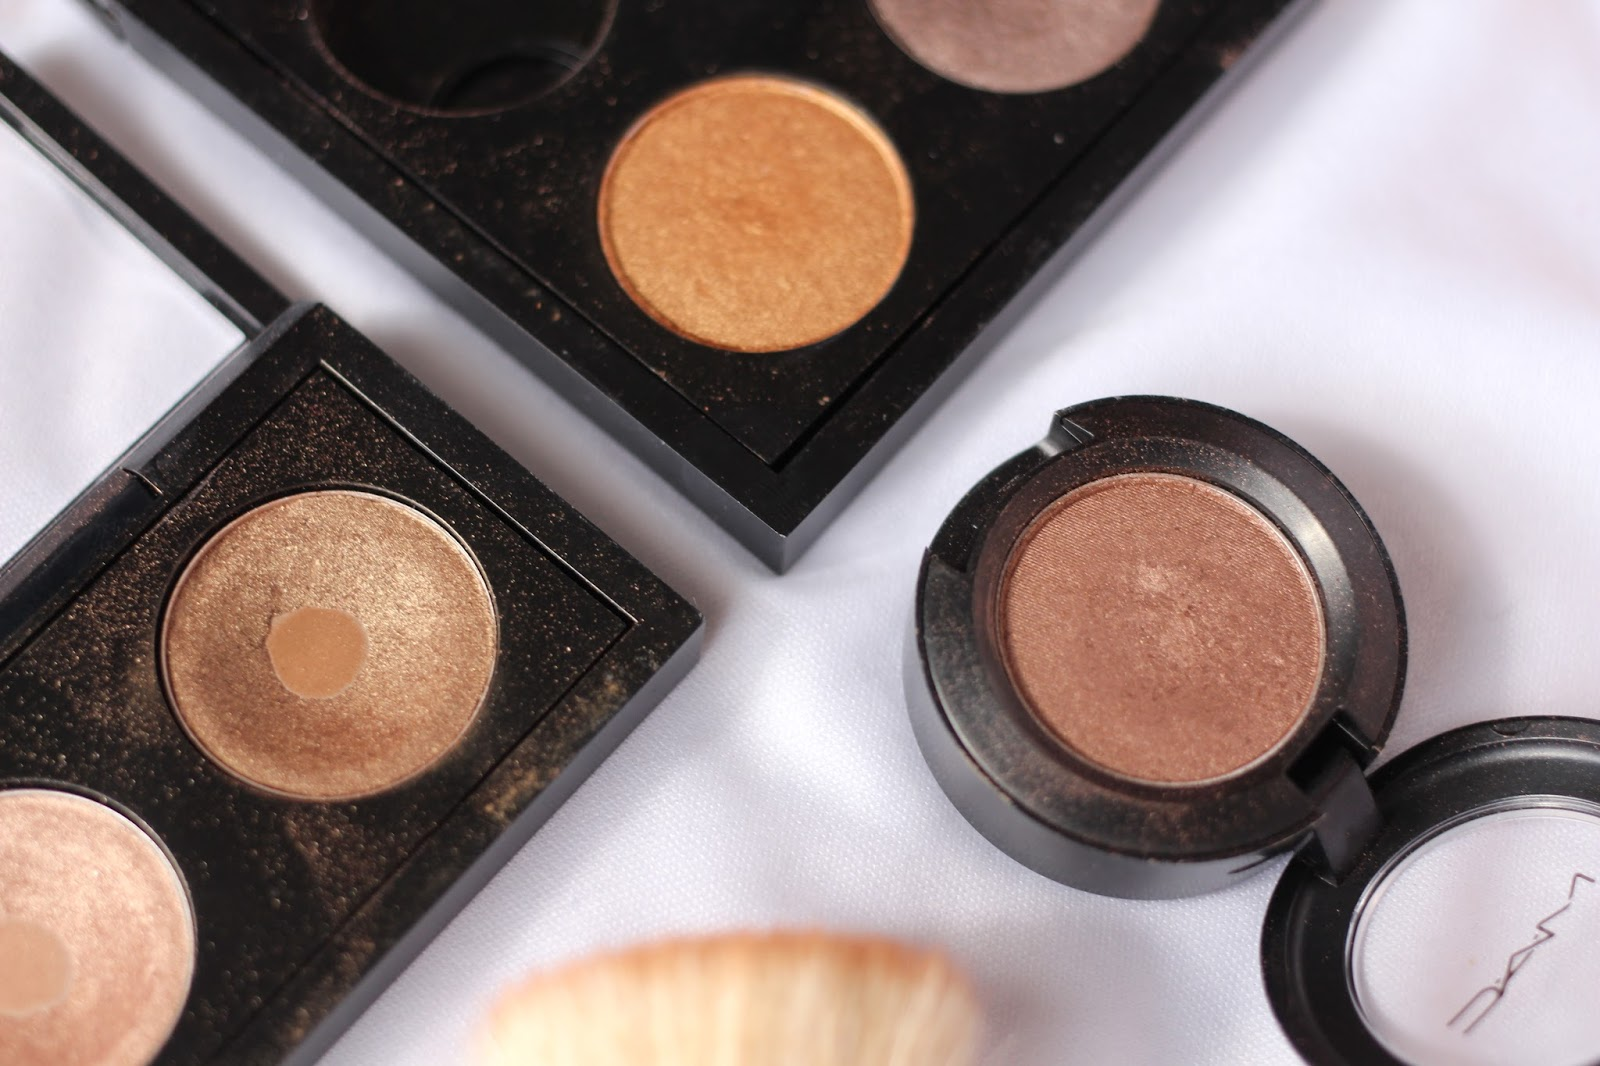 Top 3 MAC Eyeshadows For Green Eyes